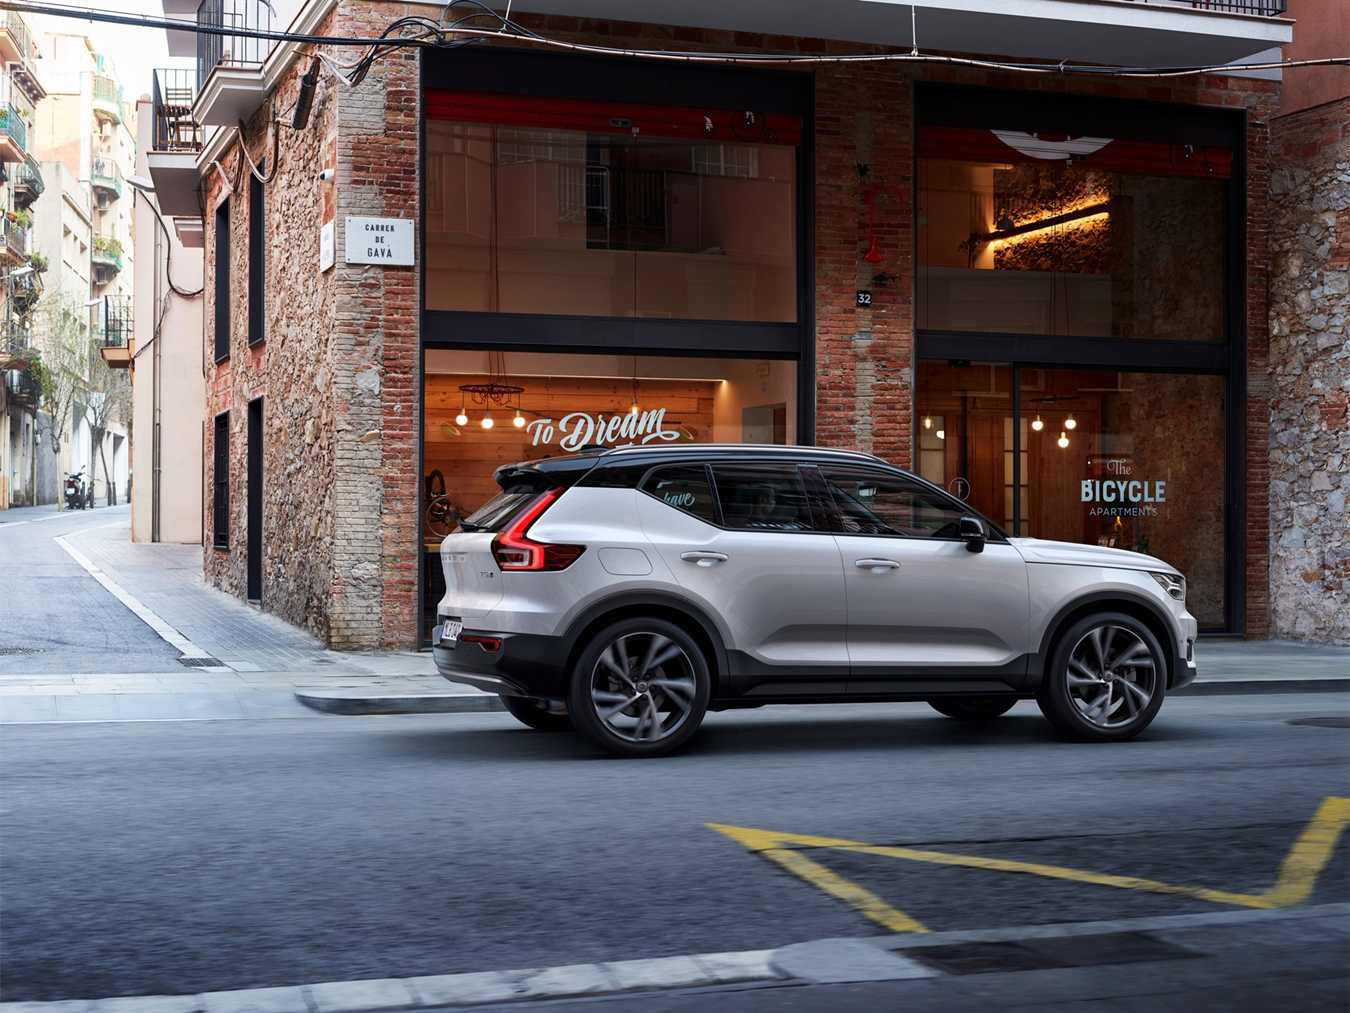 New Volvo XC40 For Sale now at Lookers